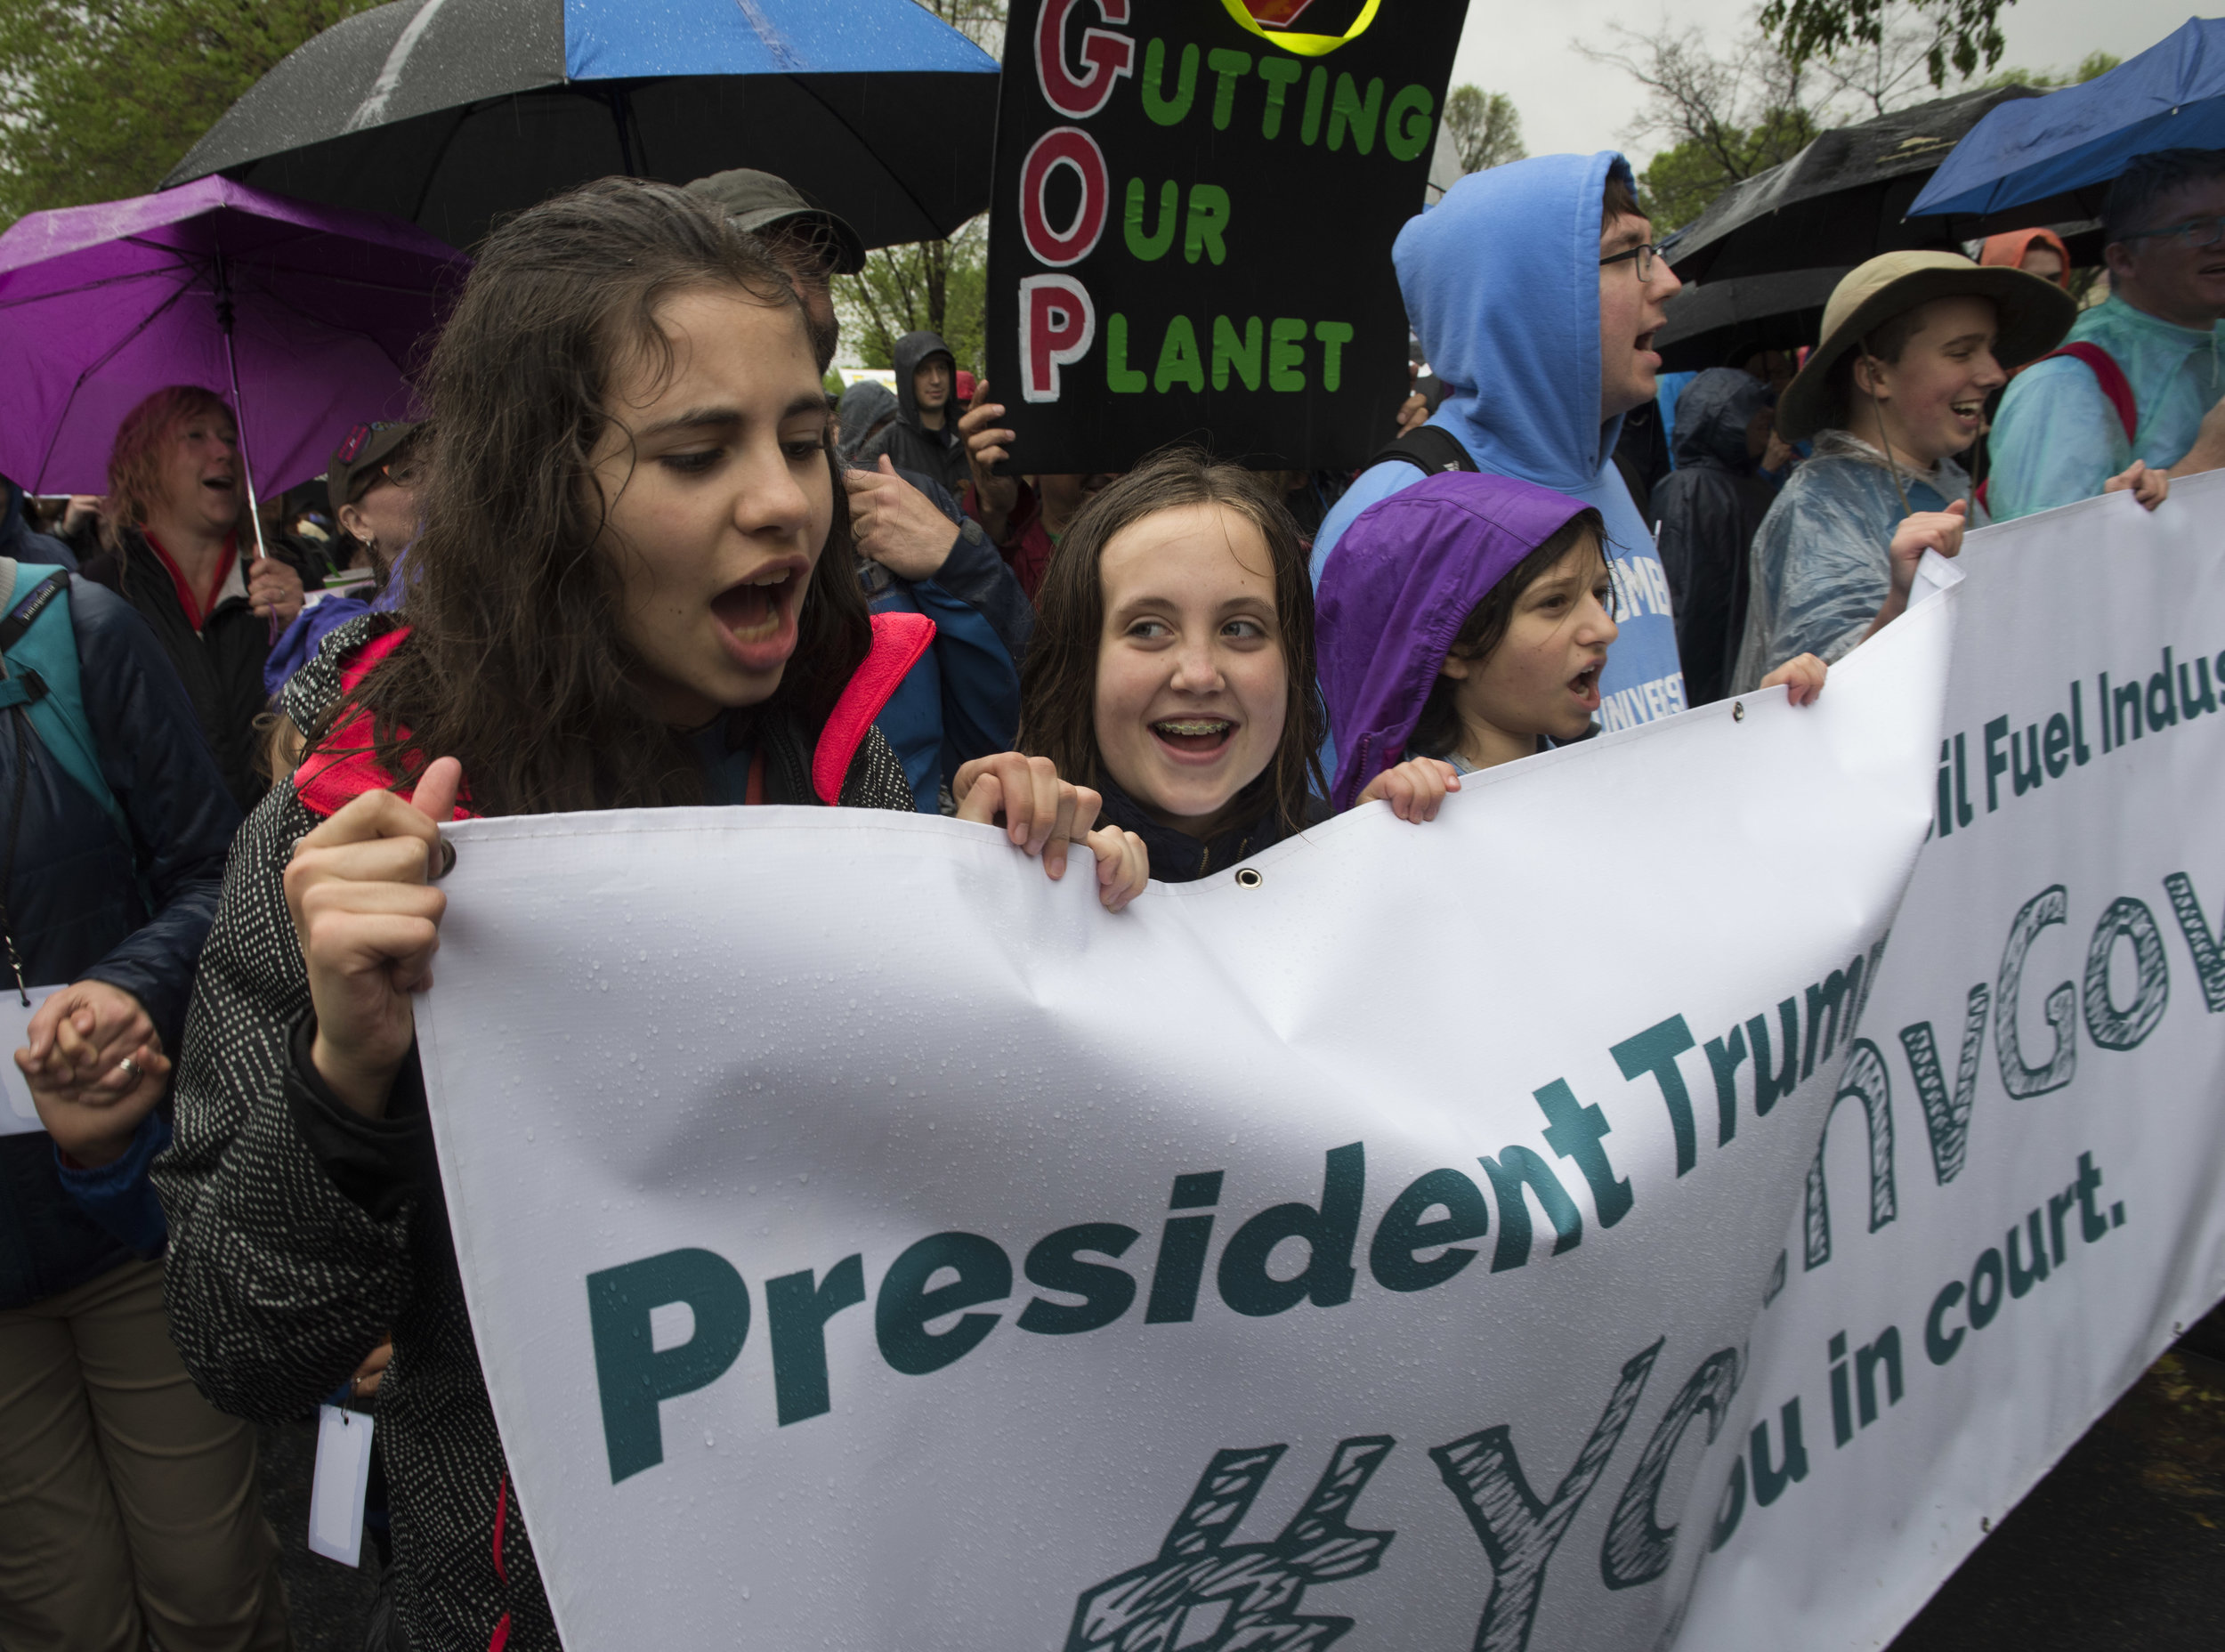 Sahara chants at the April 22, 2017 March For Science in Washington D.C. with her fellow #youthvgov plaintiffs. Photo: Robin Loznak